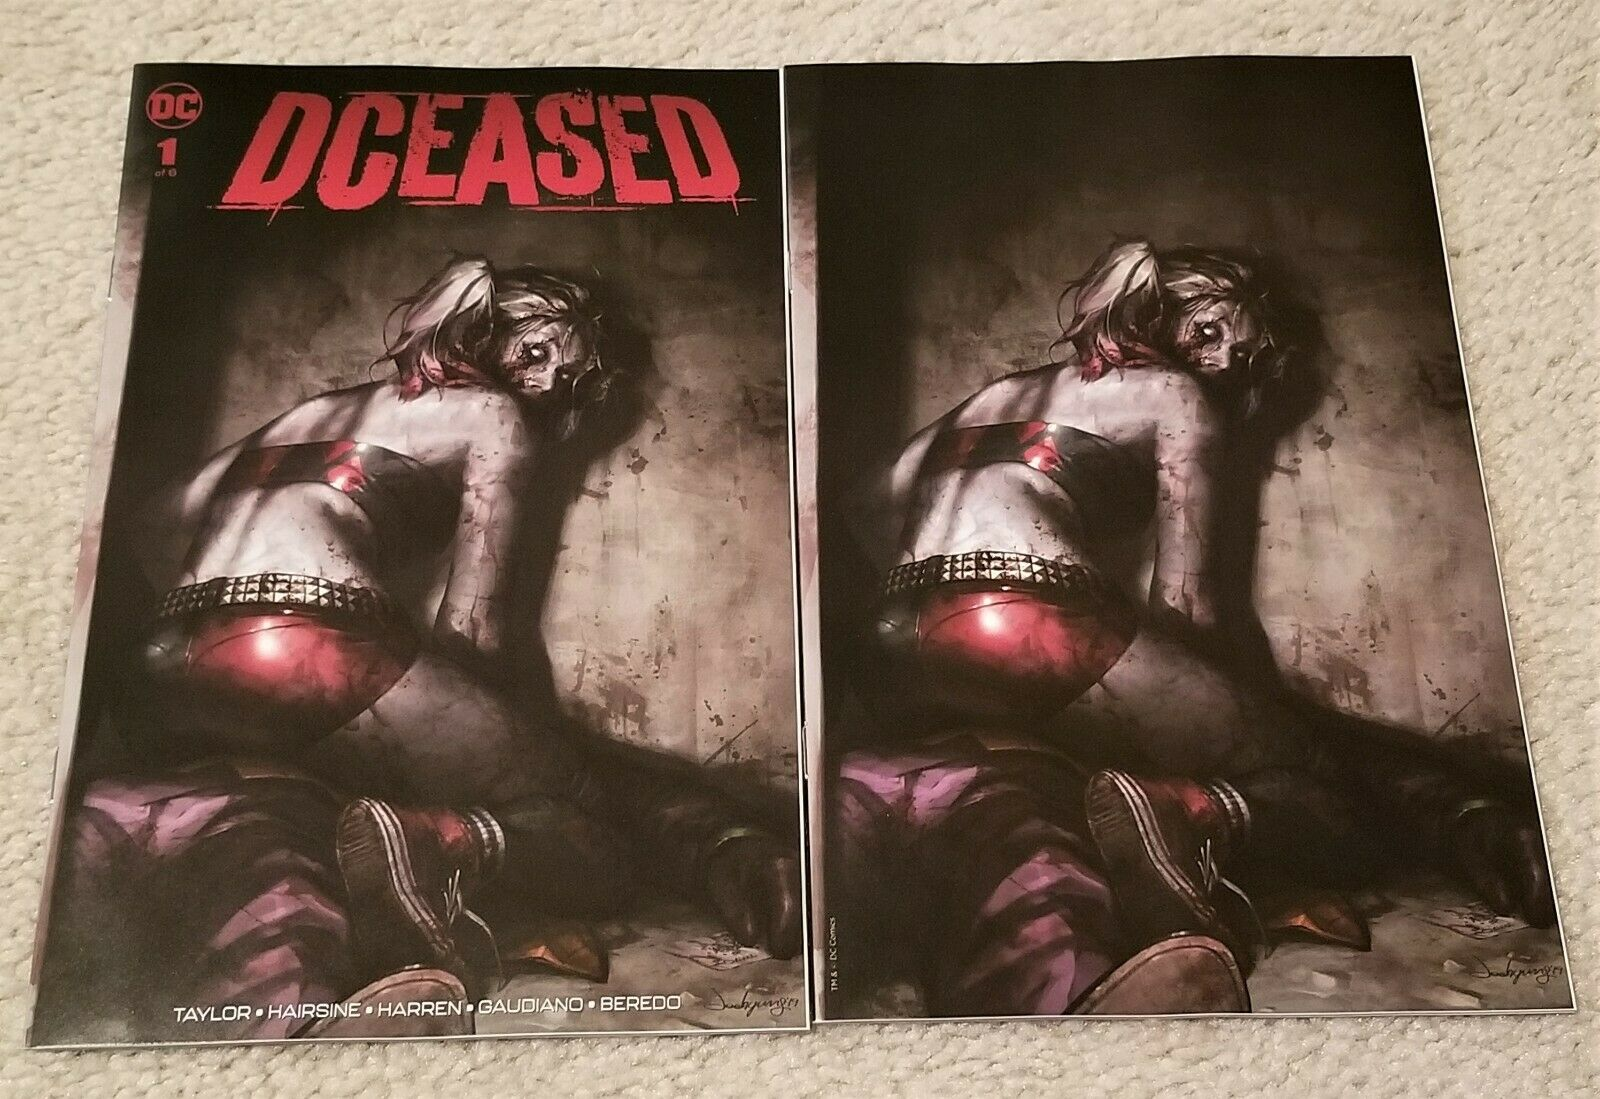 DCEASED #1 JEEHYUNG LEE ZOMBIFIED HARLEY QUINN EXCLUSIVE VARIANTS